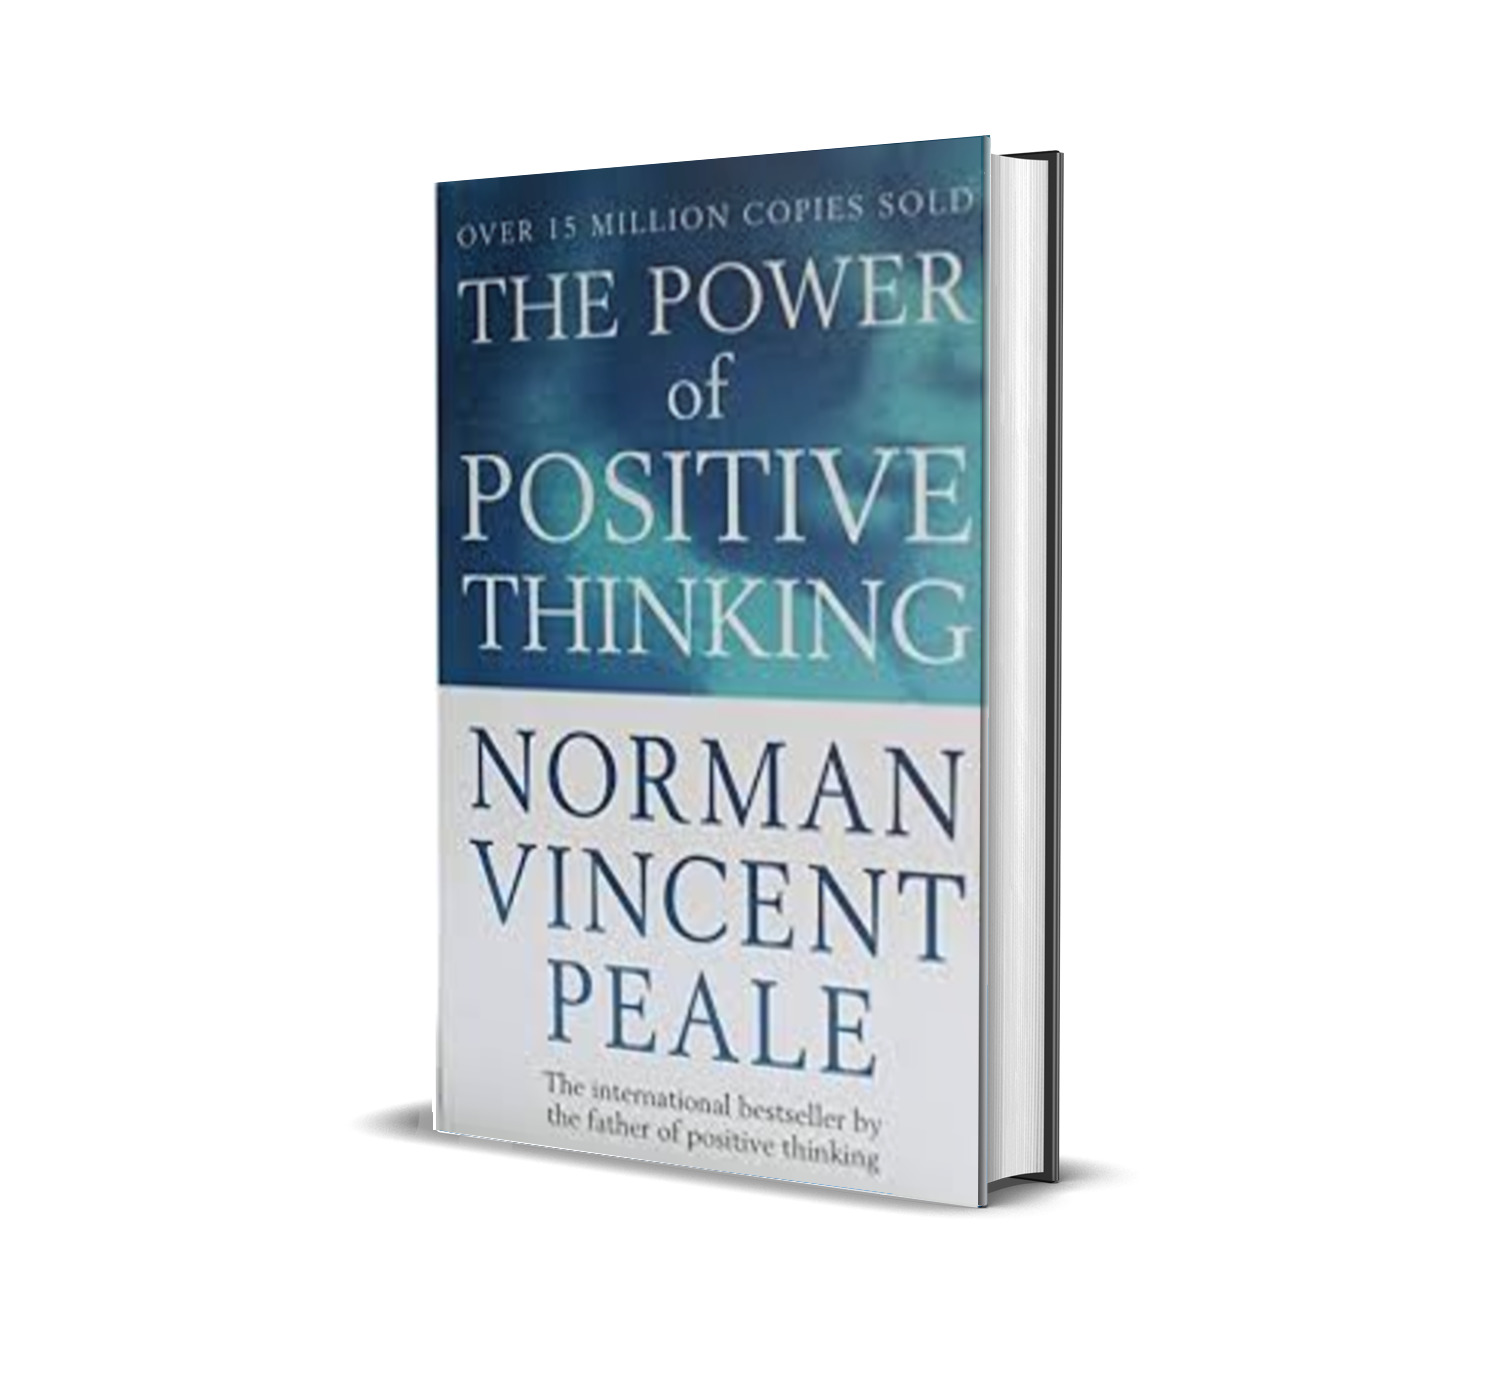 THE POWER OF POSITIVE THINKING - VINCENT NORMAN